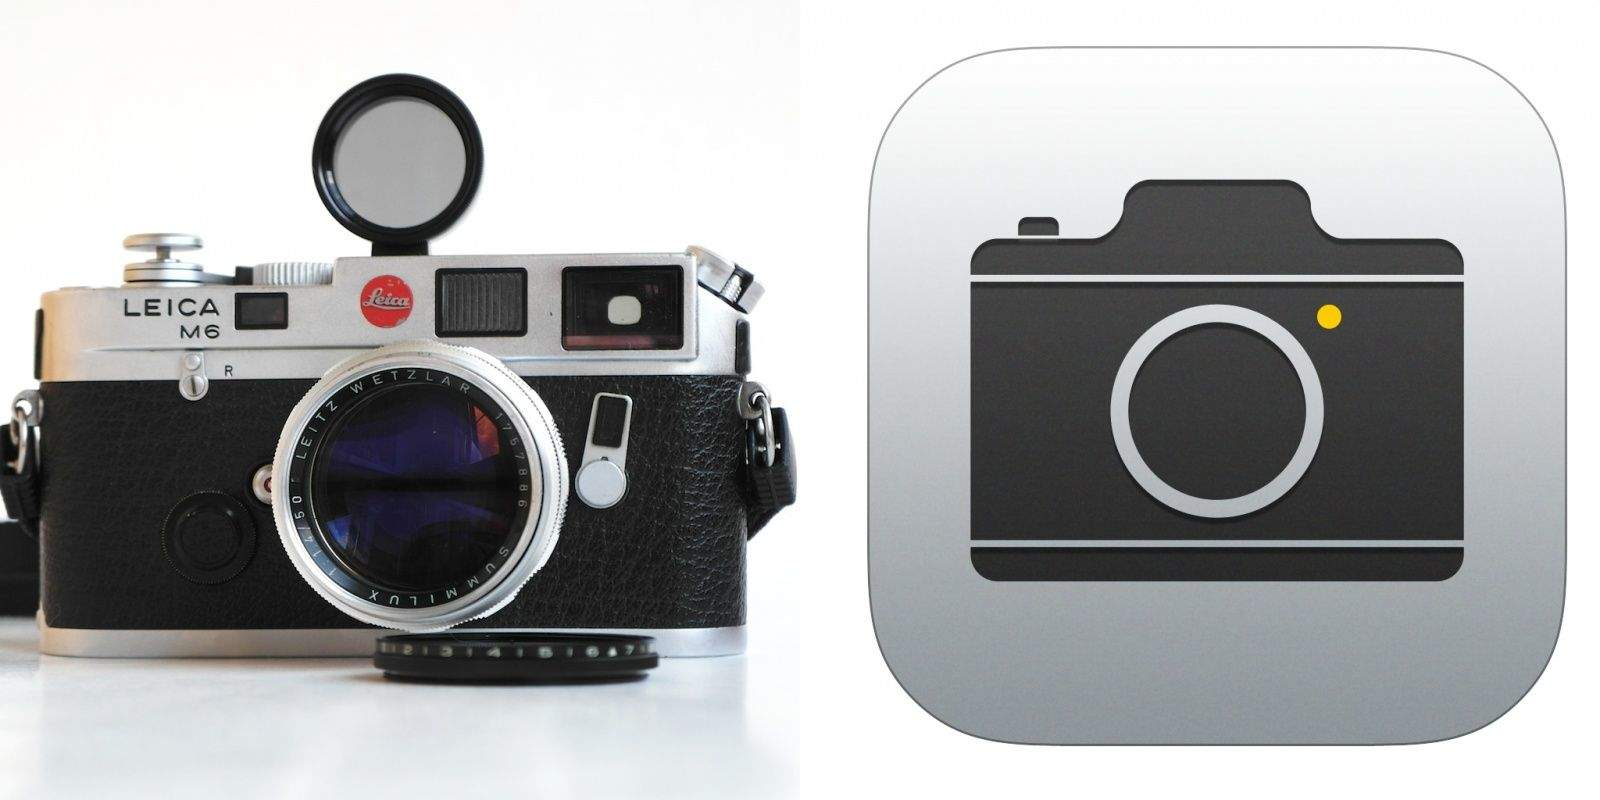 Iphone Camera App Icons Images